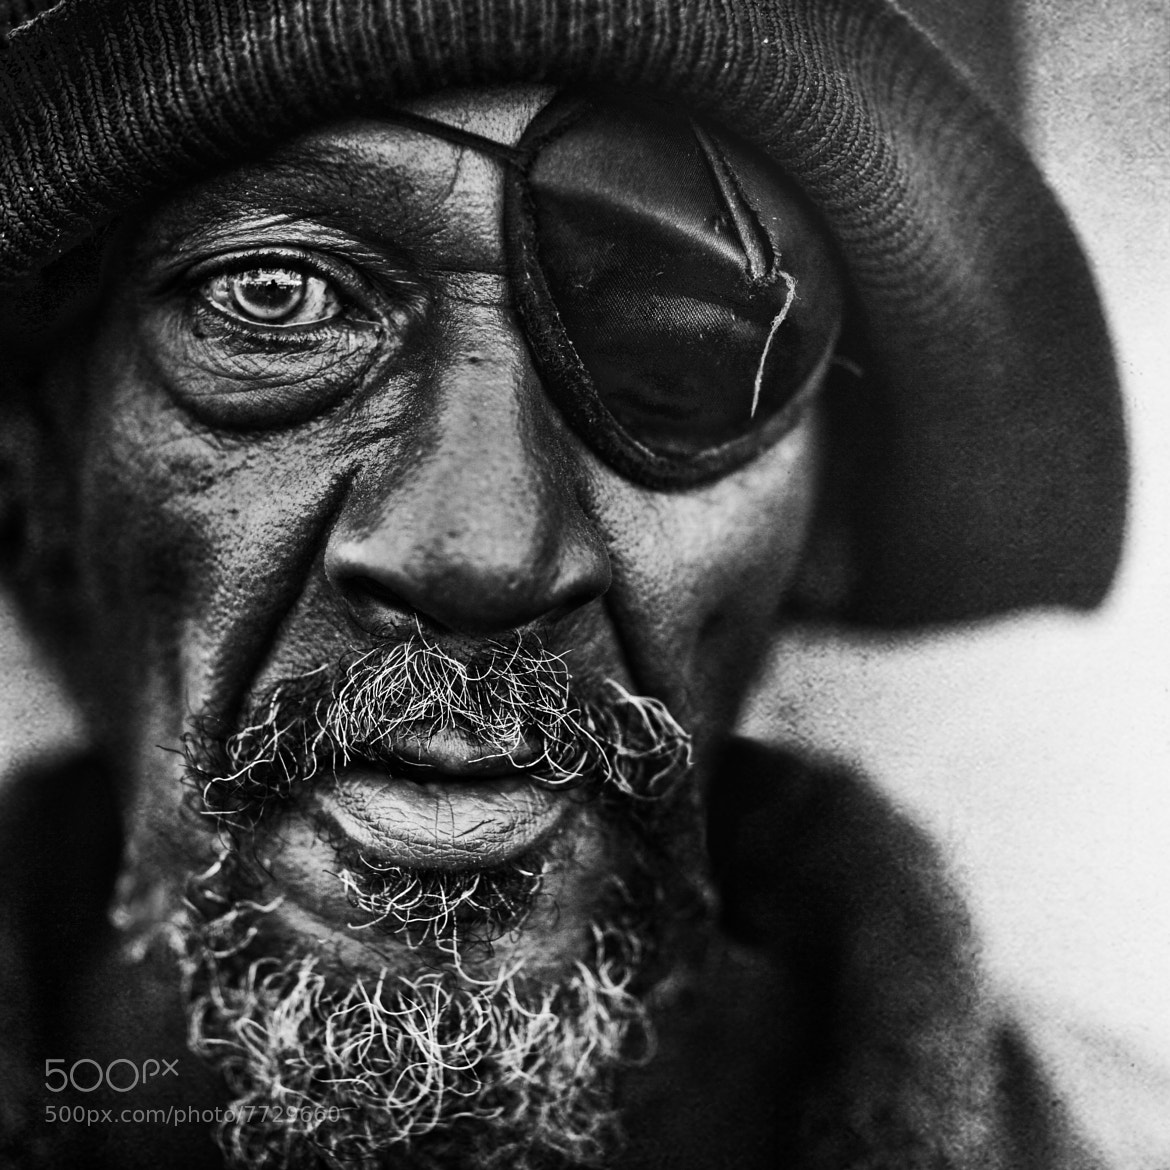 Photograph Skid Row, LA by Lee Jeffries on 500px